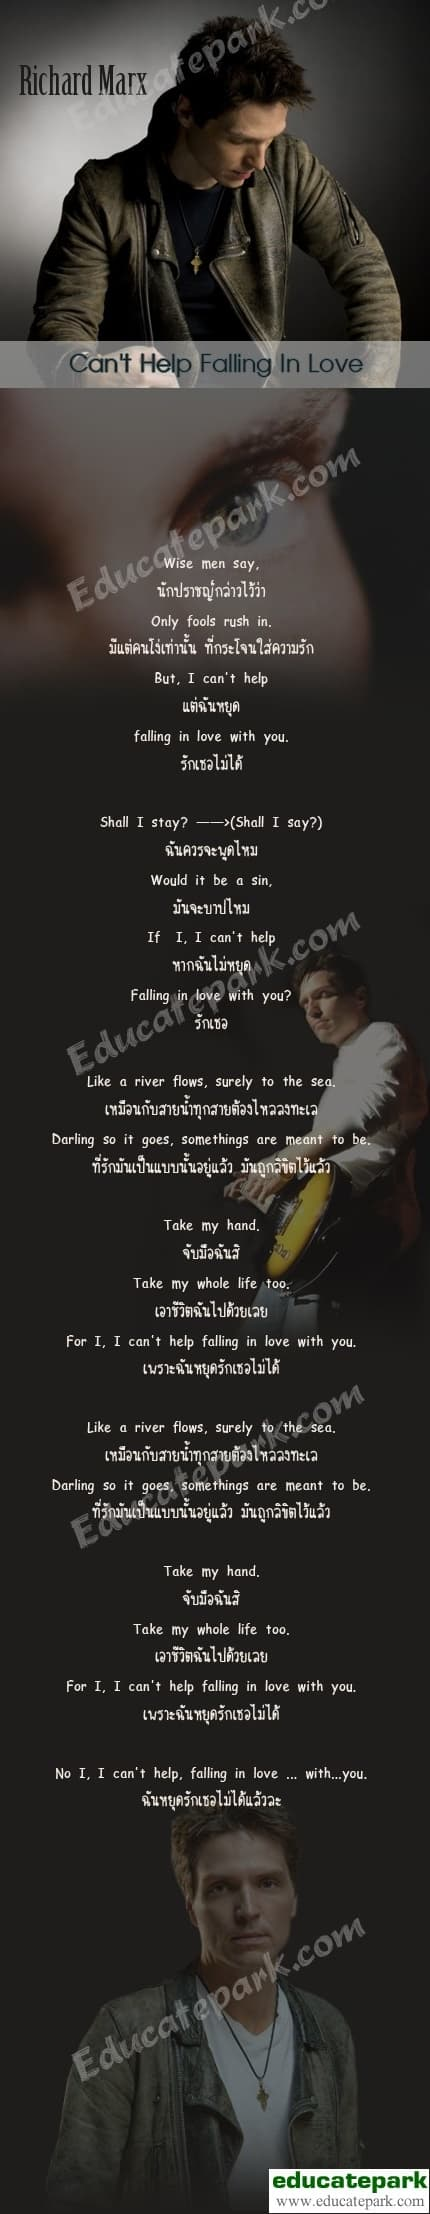 แปลเพลง Can't Help Falling in Love - Richard Marx